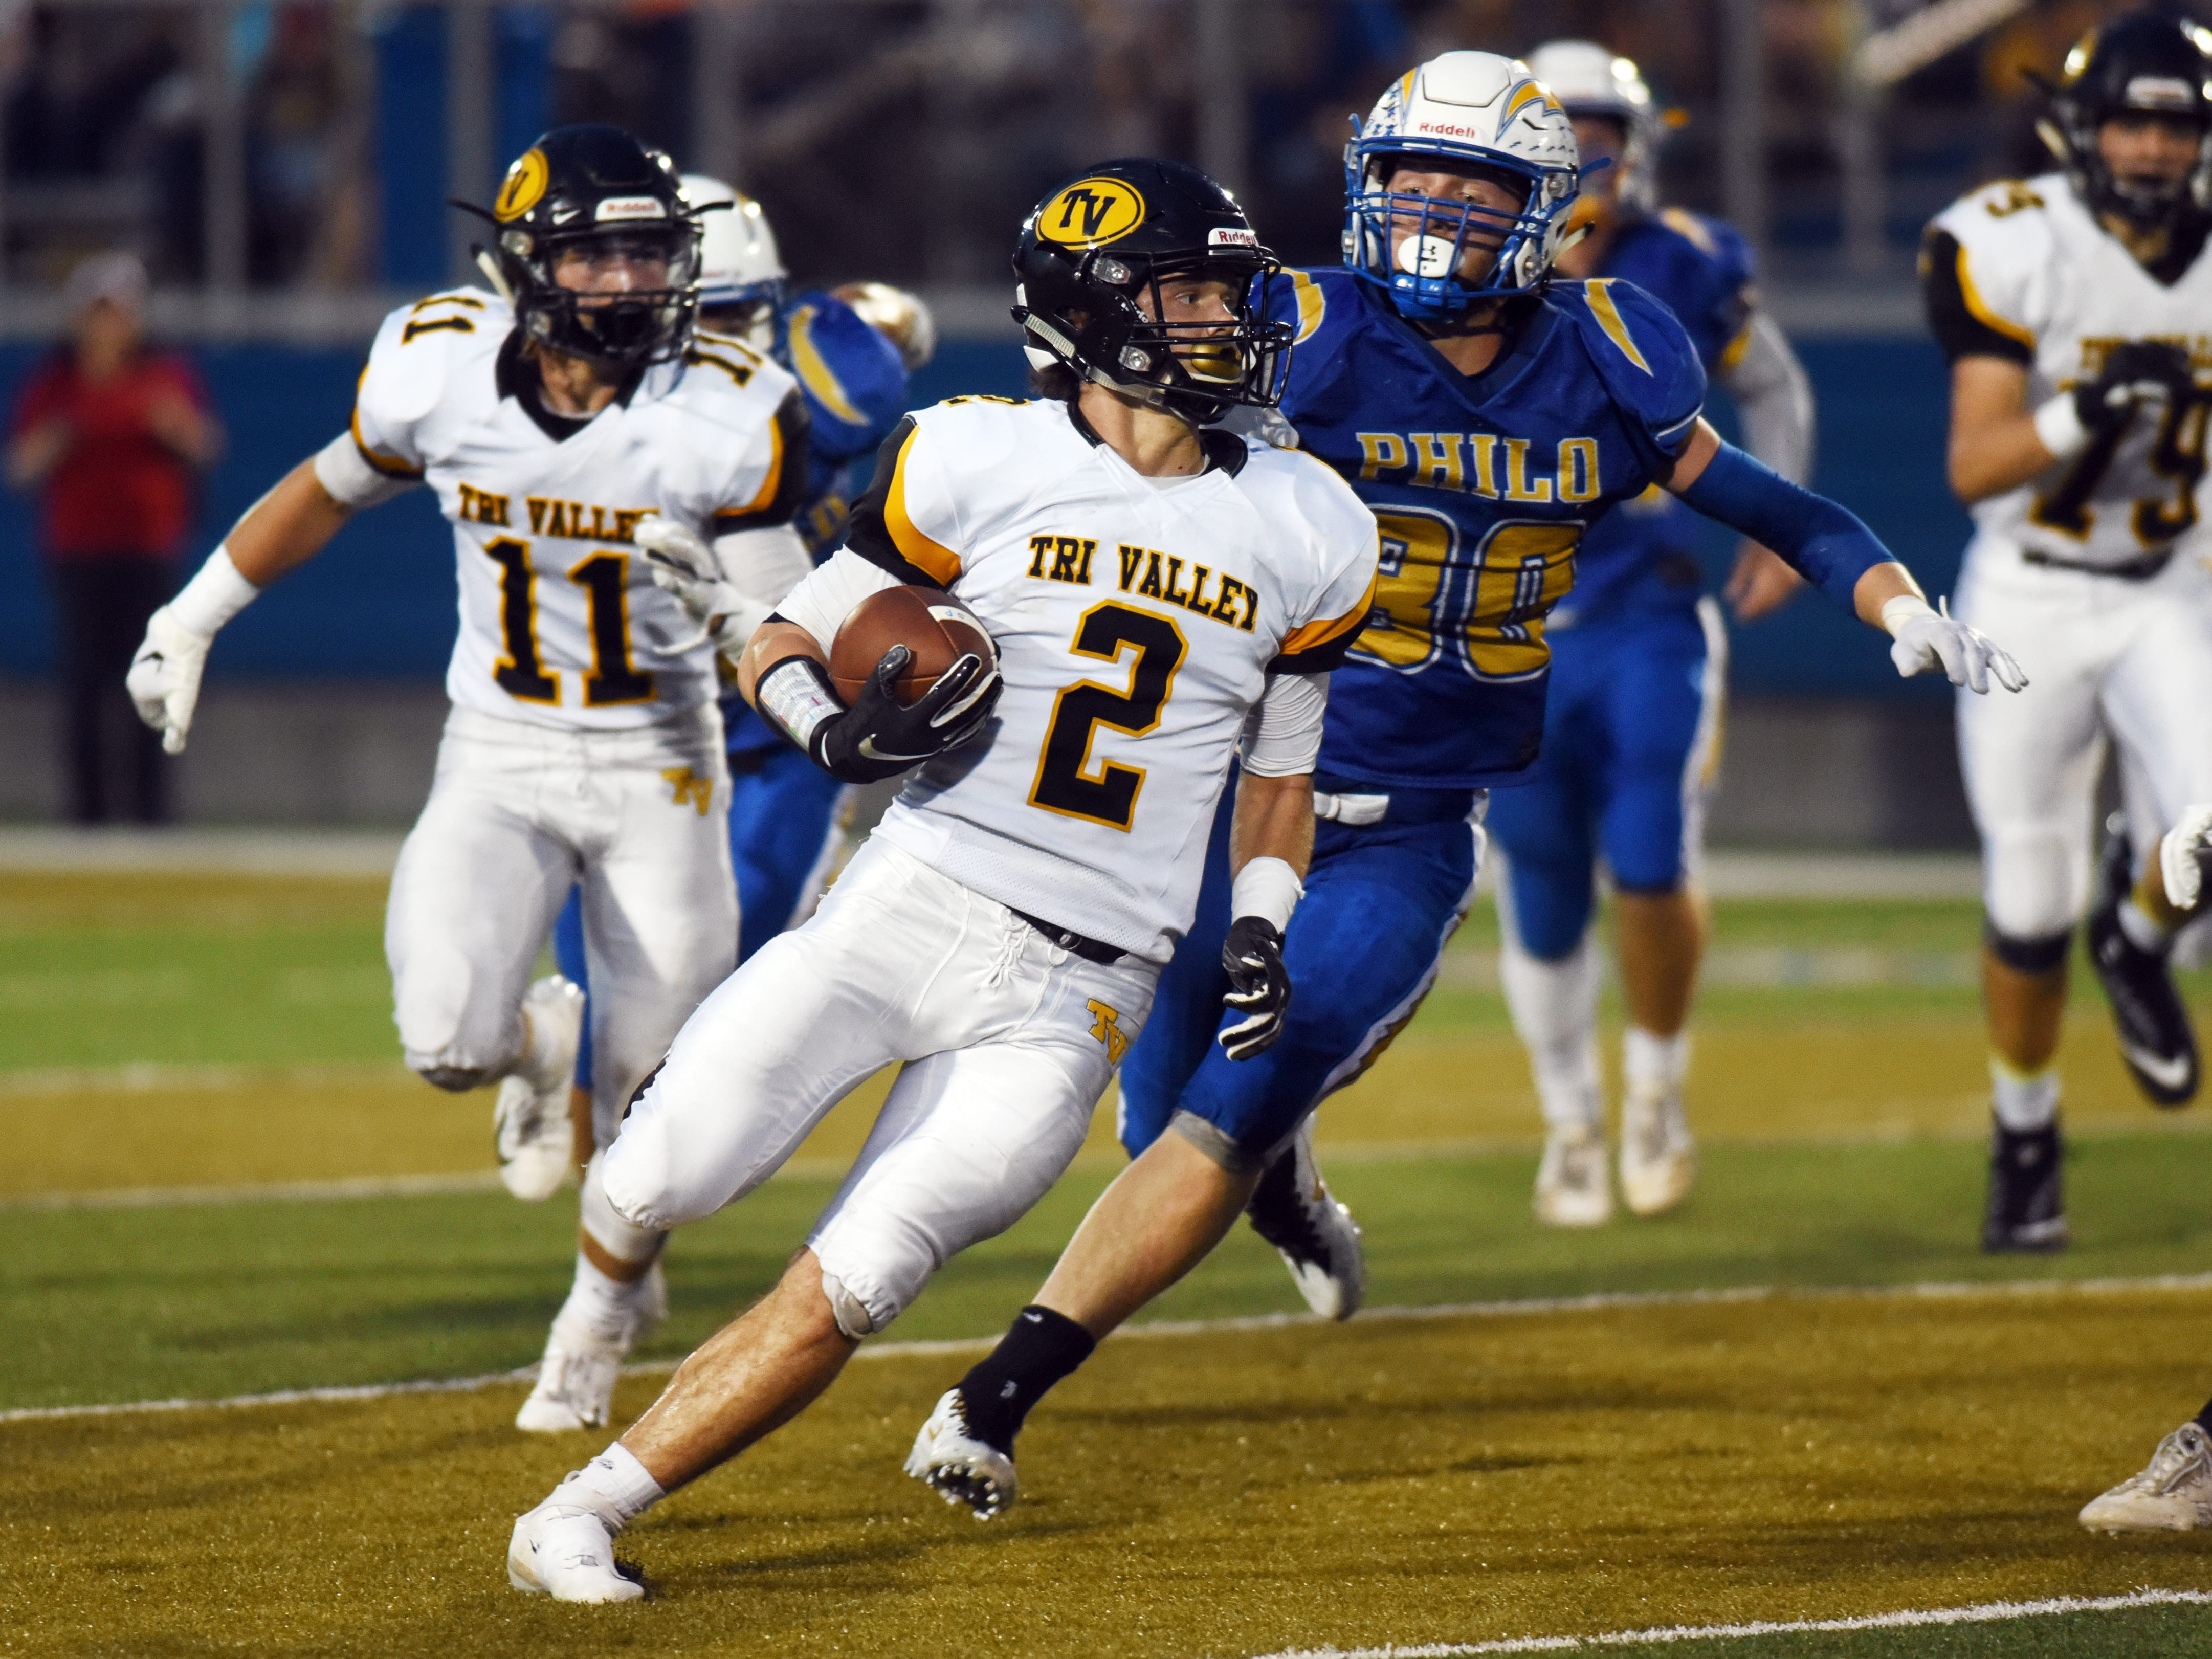 Blayze Taylor, of Tri-Valley, returns a punt for a touchdown against Philo during the second quarter of a 28-14 win on Friday night at Sam Hatfield Stadium.